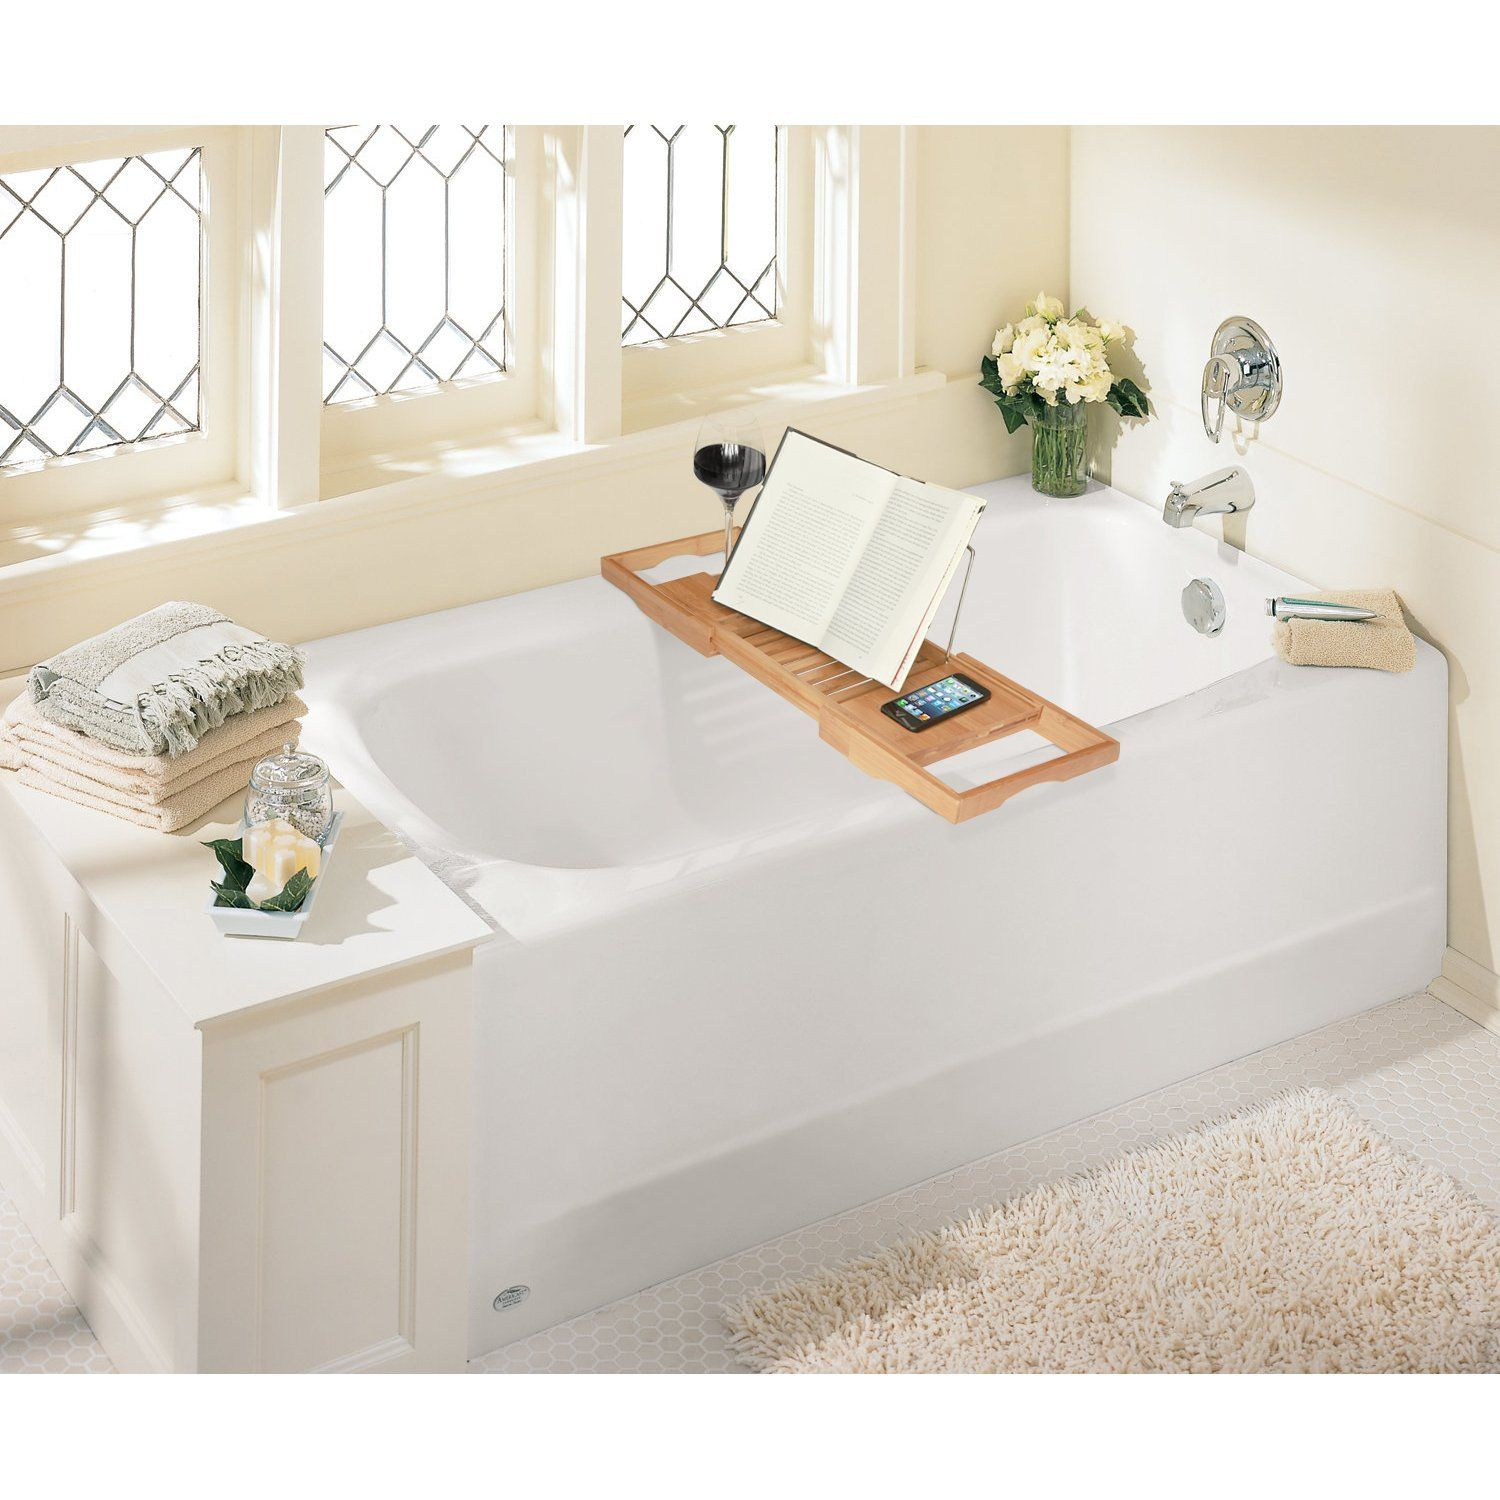 Expandable Deluxe Bamboo Bathtub Caddy with a Bar | Dad | Pinterest ...